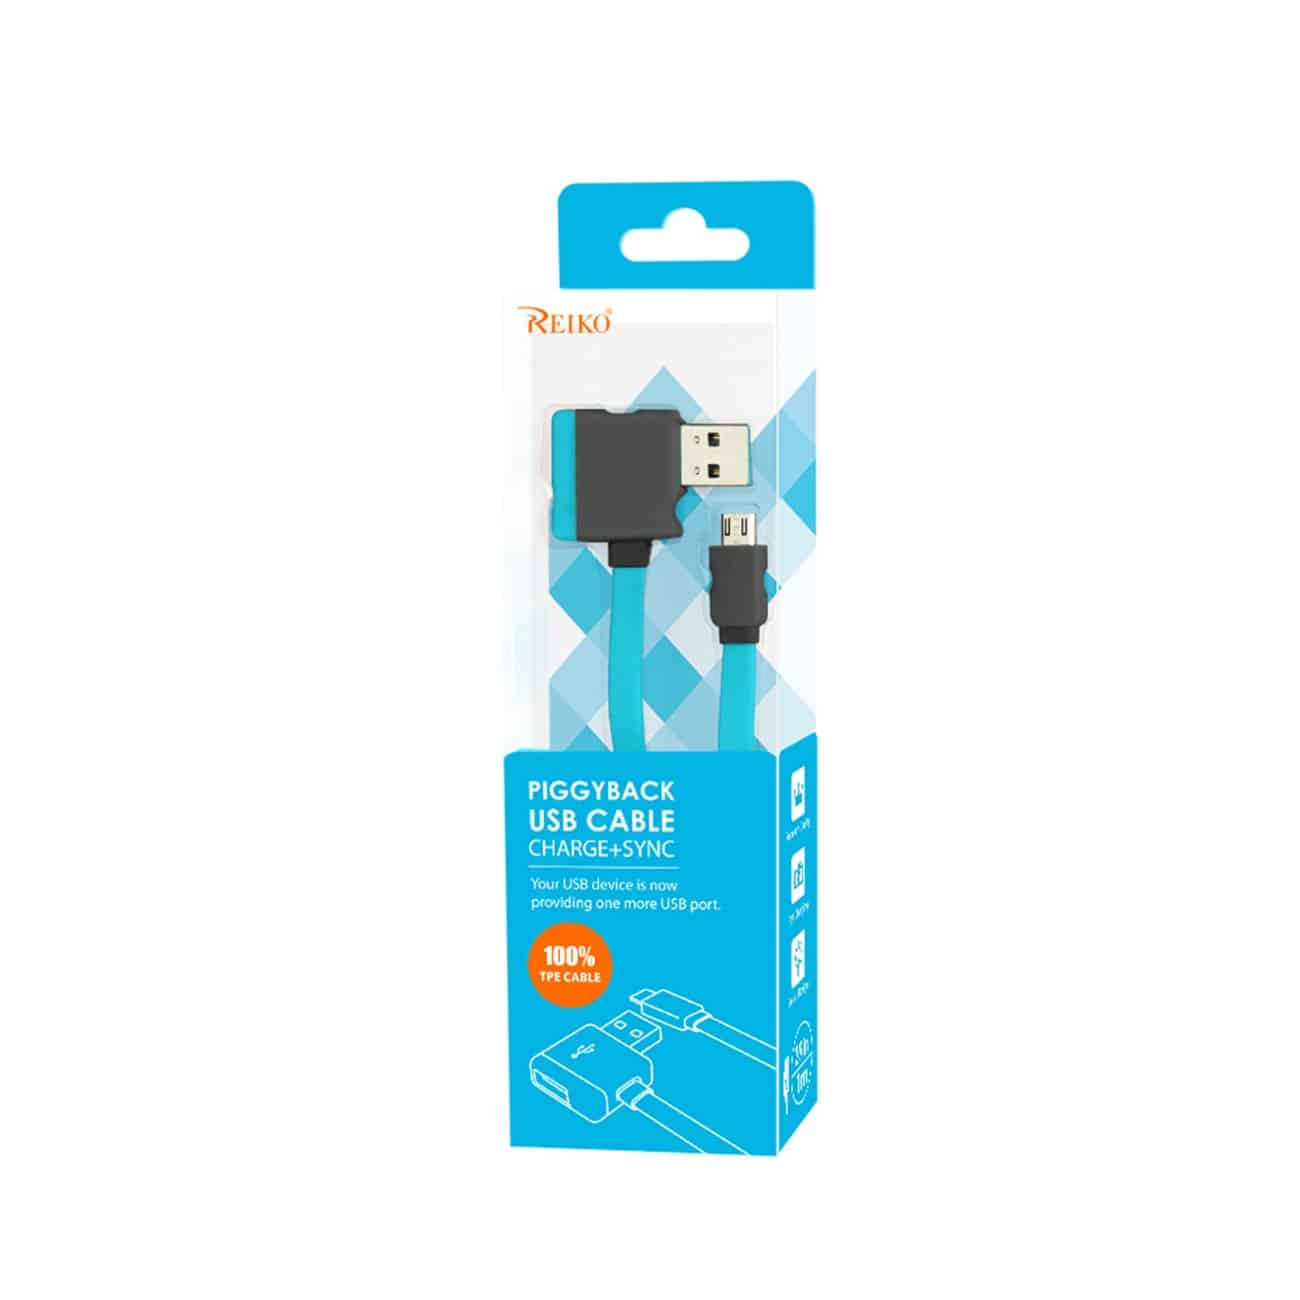 MICRO USB PIGGYBACK FLAT LIBERATOR USB CABLE 3.2FT IN BLUE